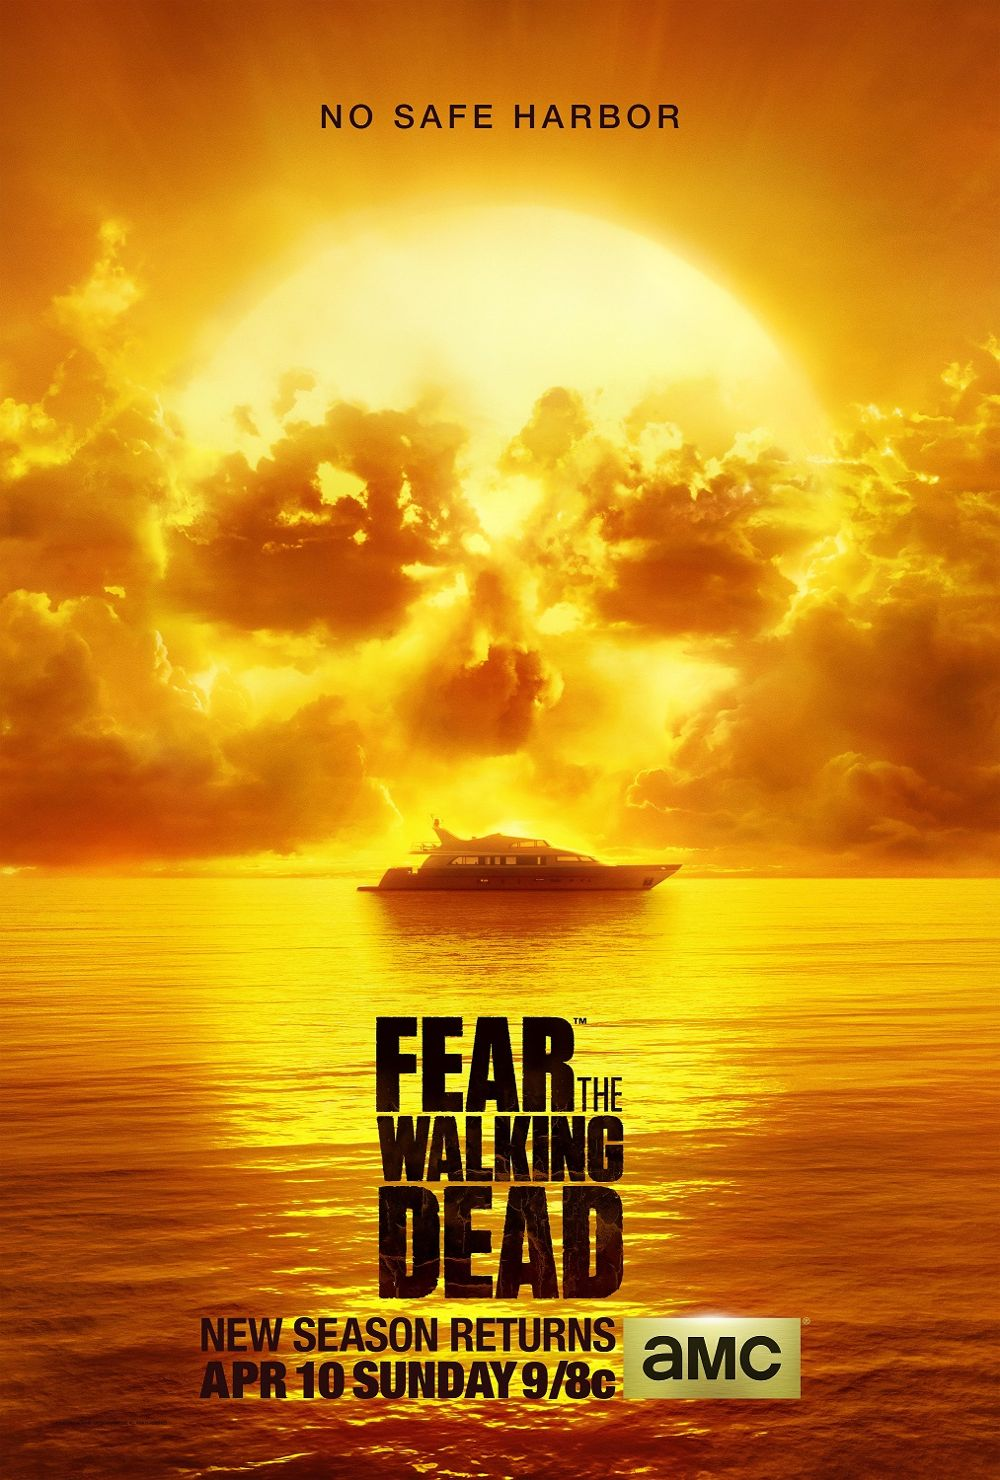 FEAR THE WALKING DEAD Season 2 Poster Key Art